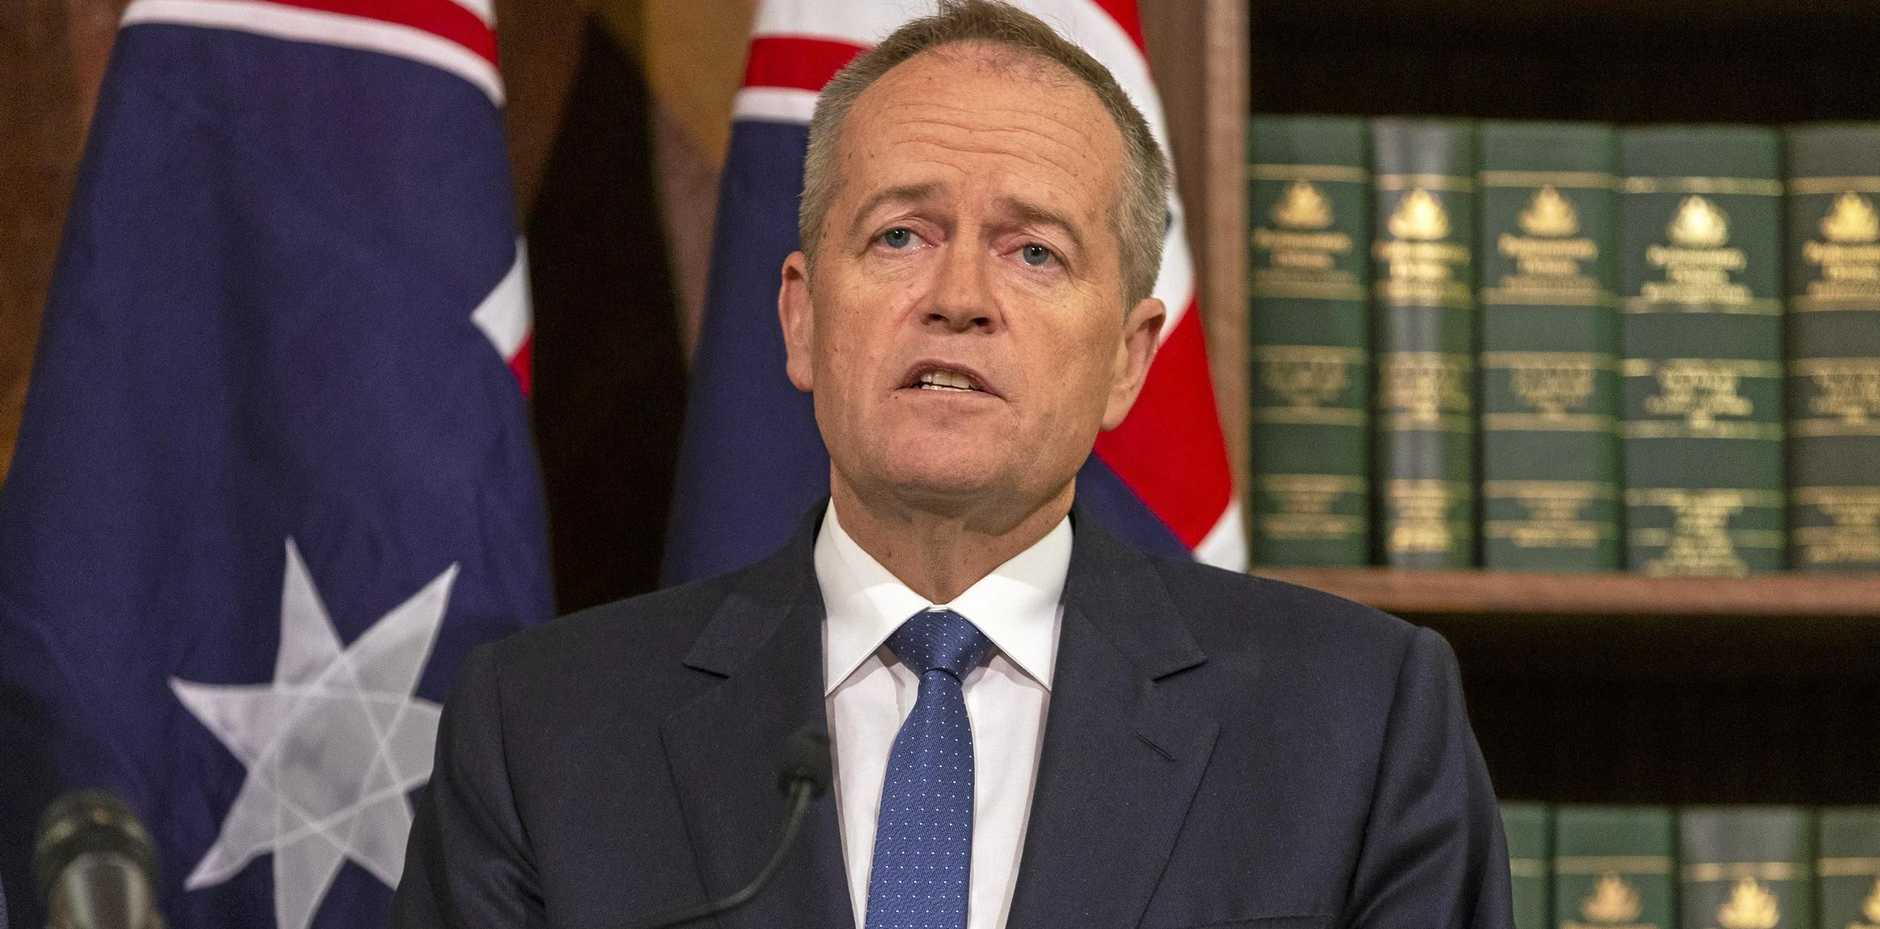 Opposition leader Bill Shorten speaks to the media during a Labor Party press conference in Melbourne.